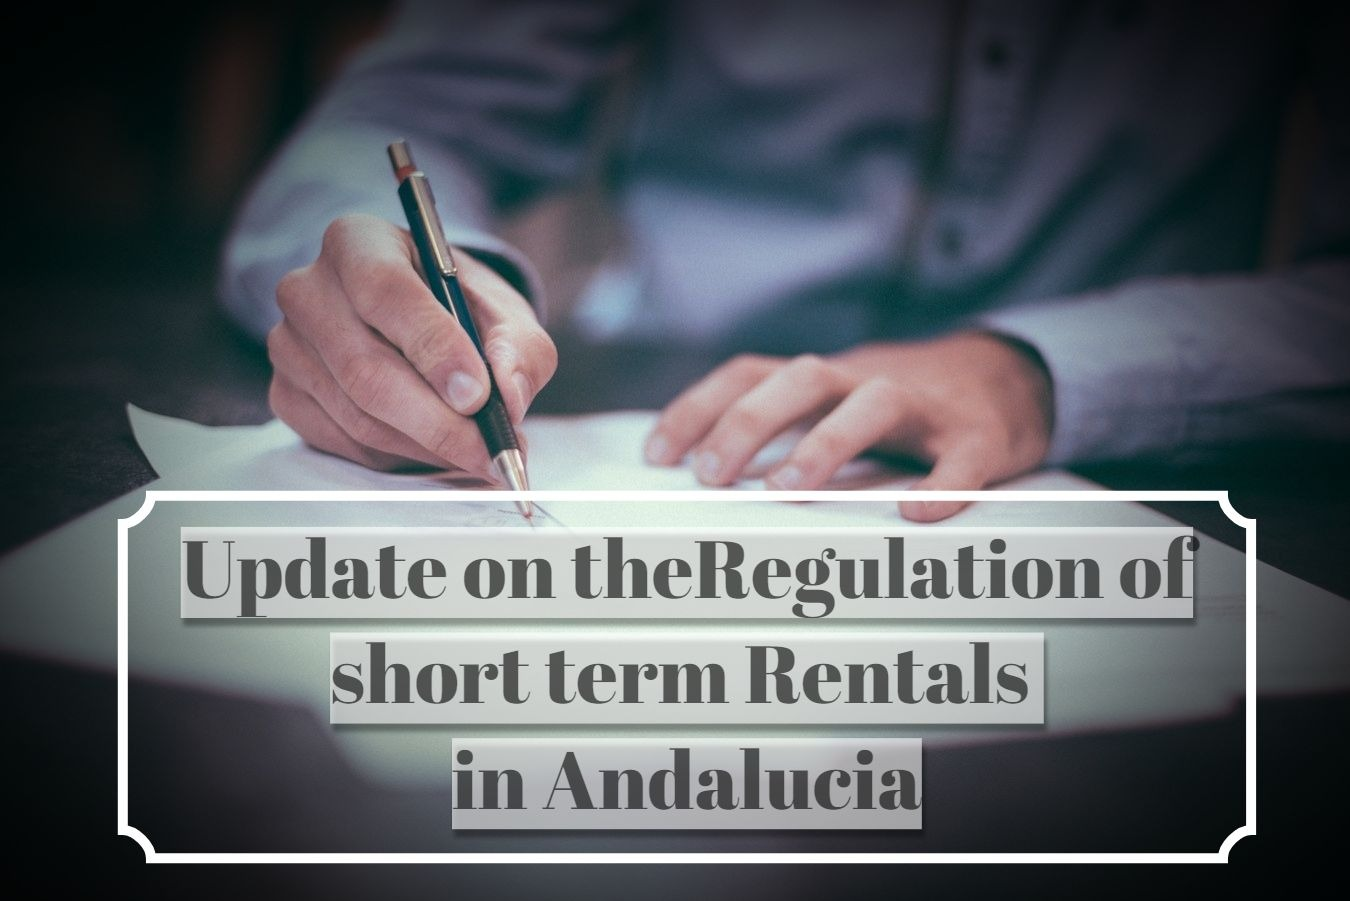 photo 1450101499163 c8848c66ca85 1 - An update on the Regulation of short term rentals in Andalucia